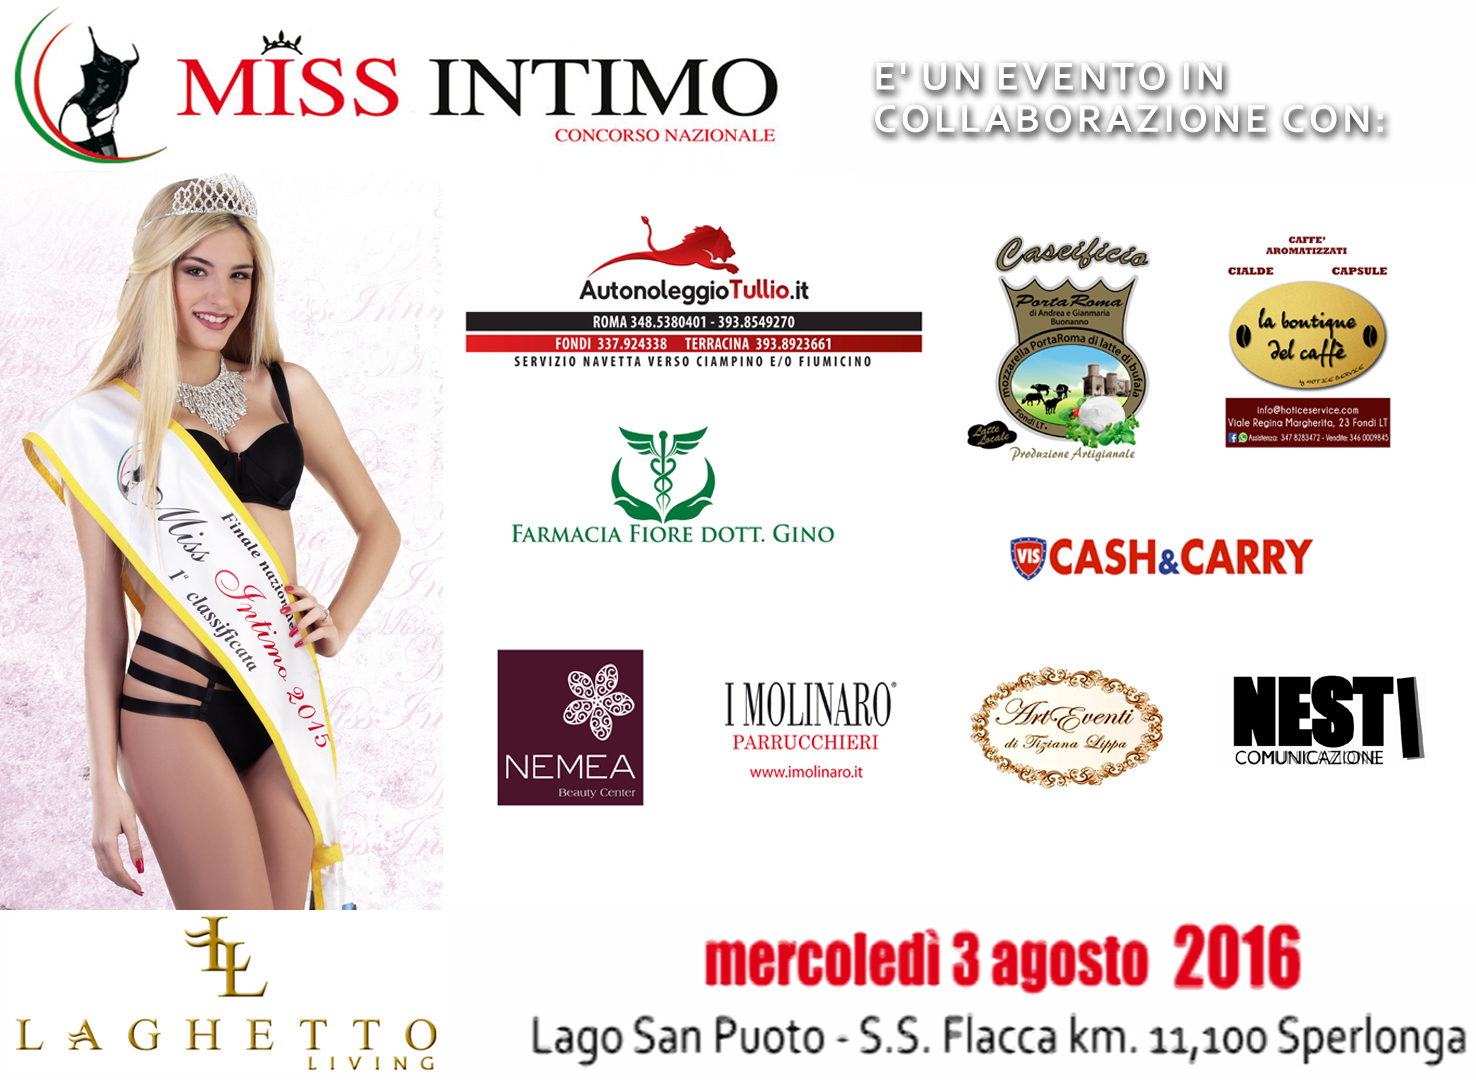 SLIDE SPONSOR MISS INTIMO 2016 LAGHETTO LIVING